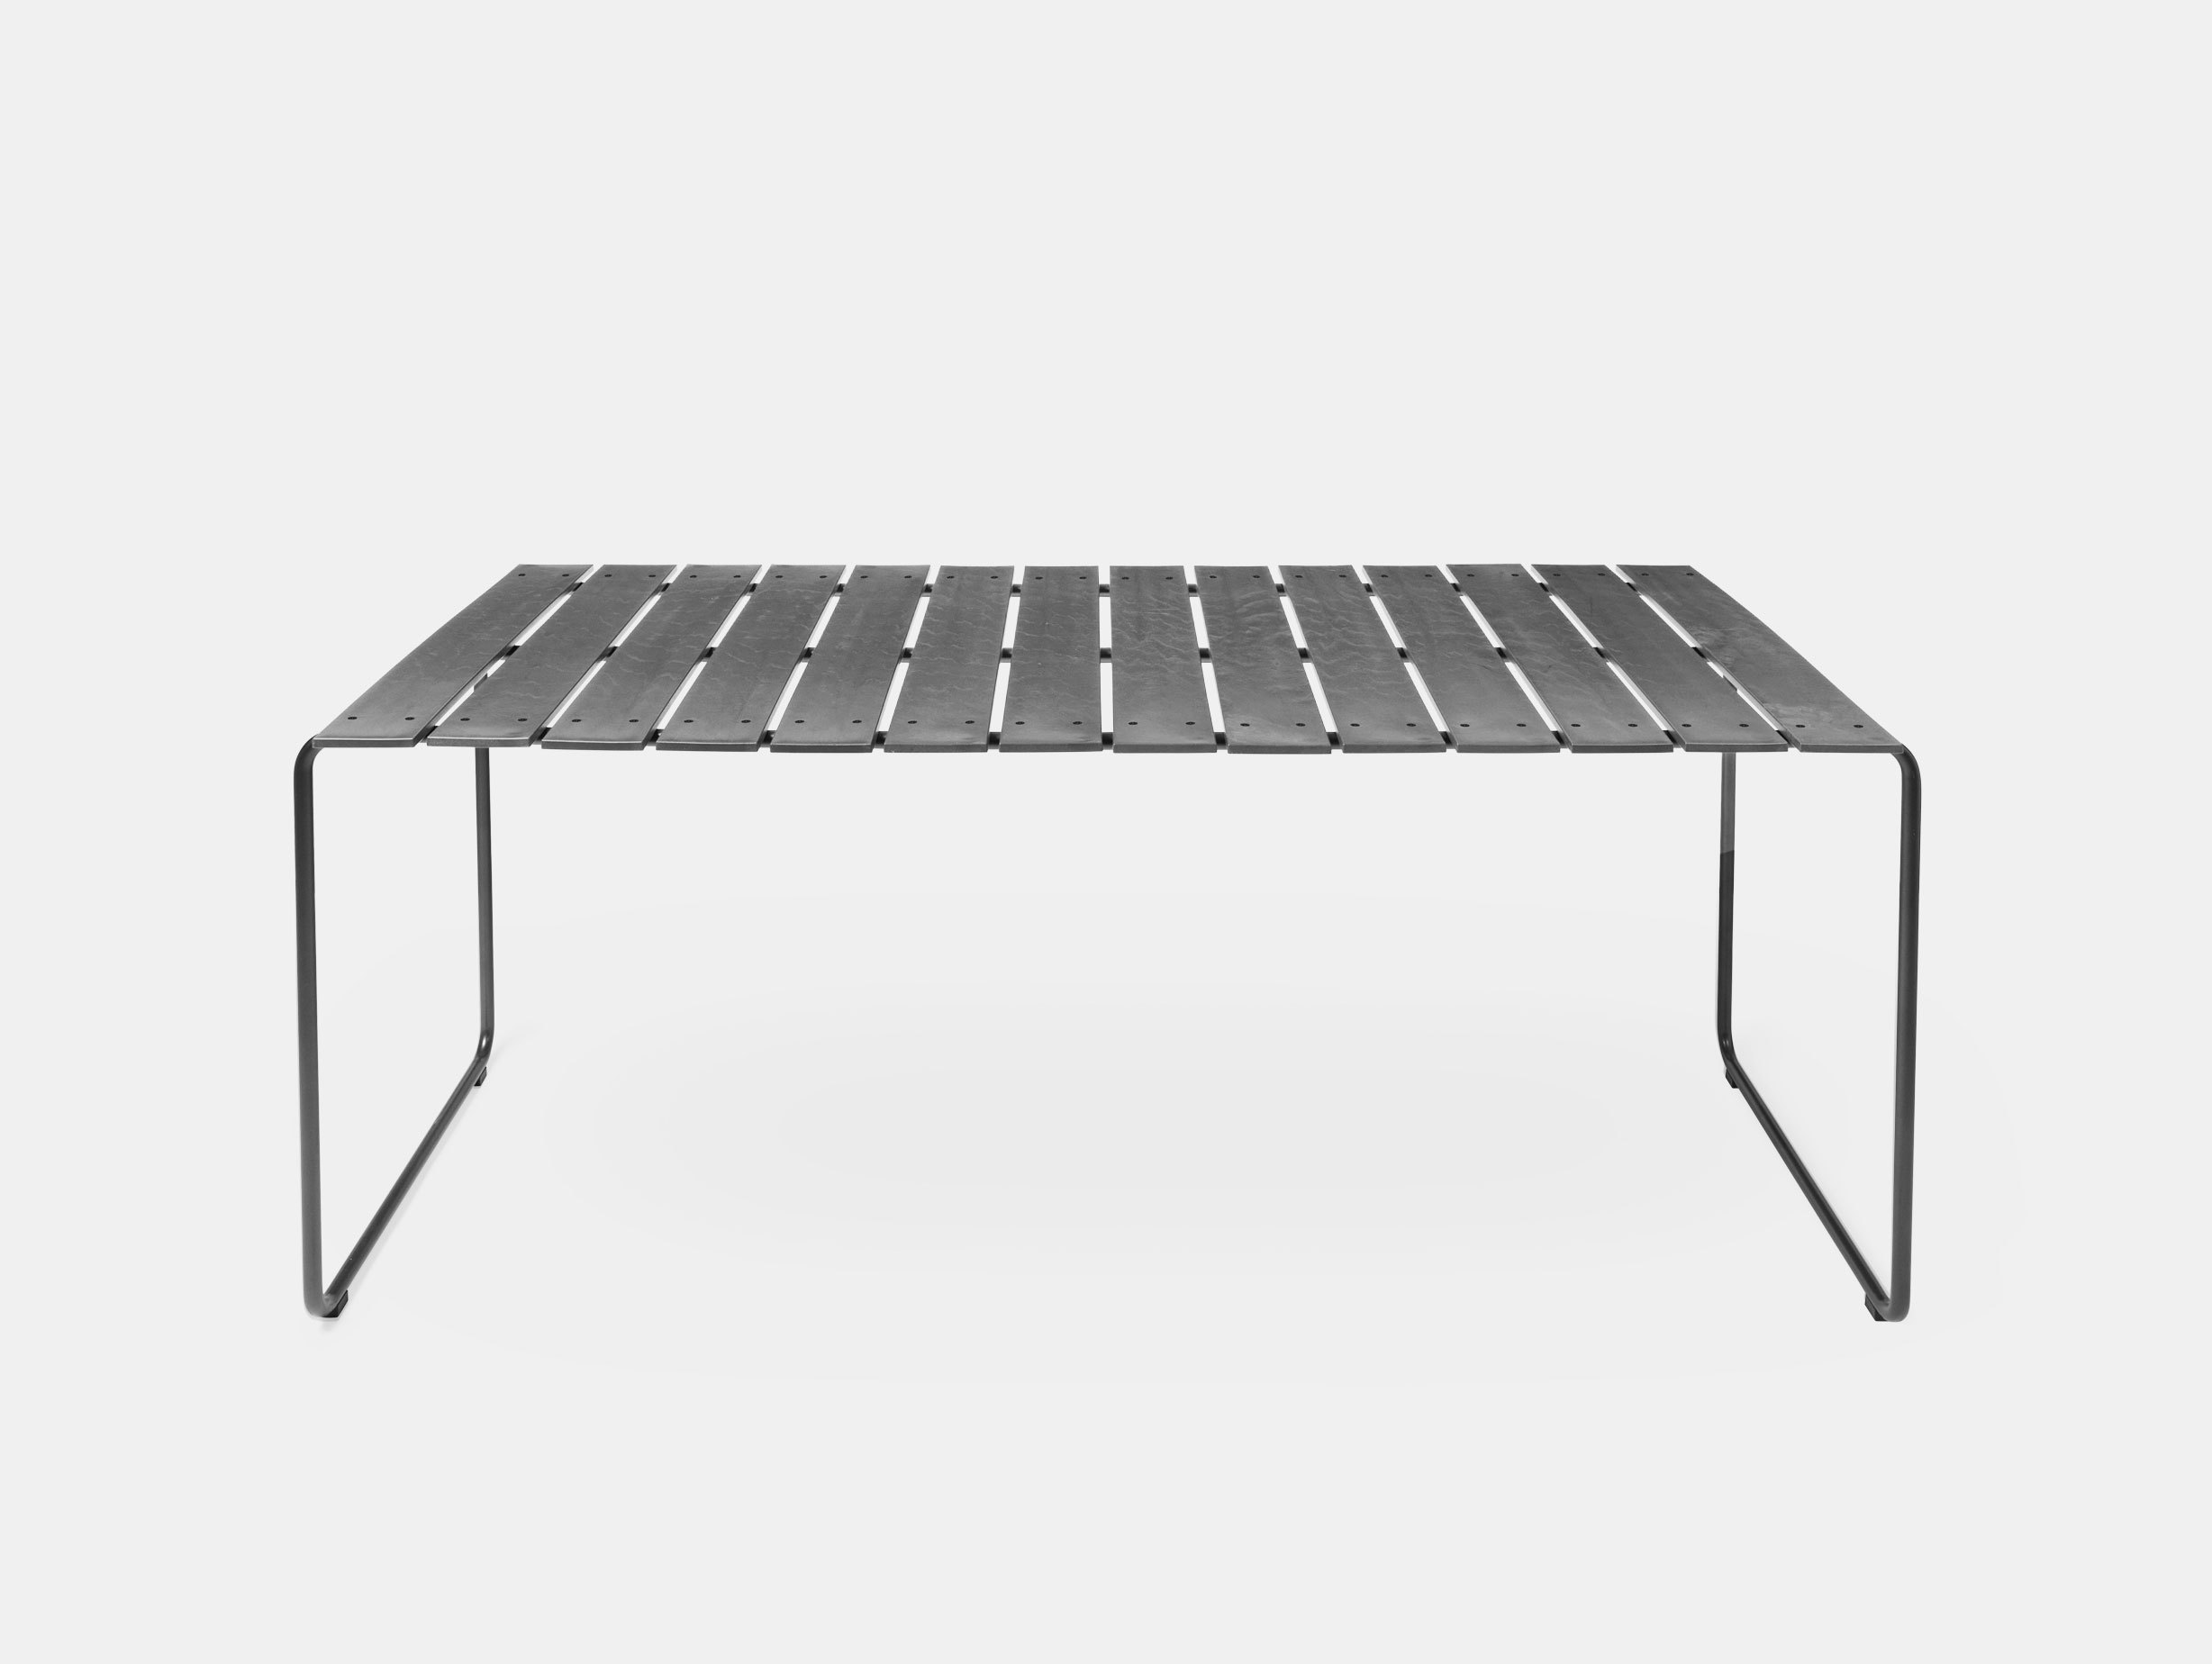 Mater Ocean Table 140X70 Concrete Grey Nanna Ditzel